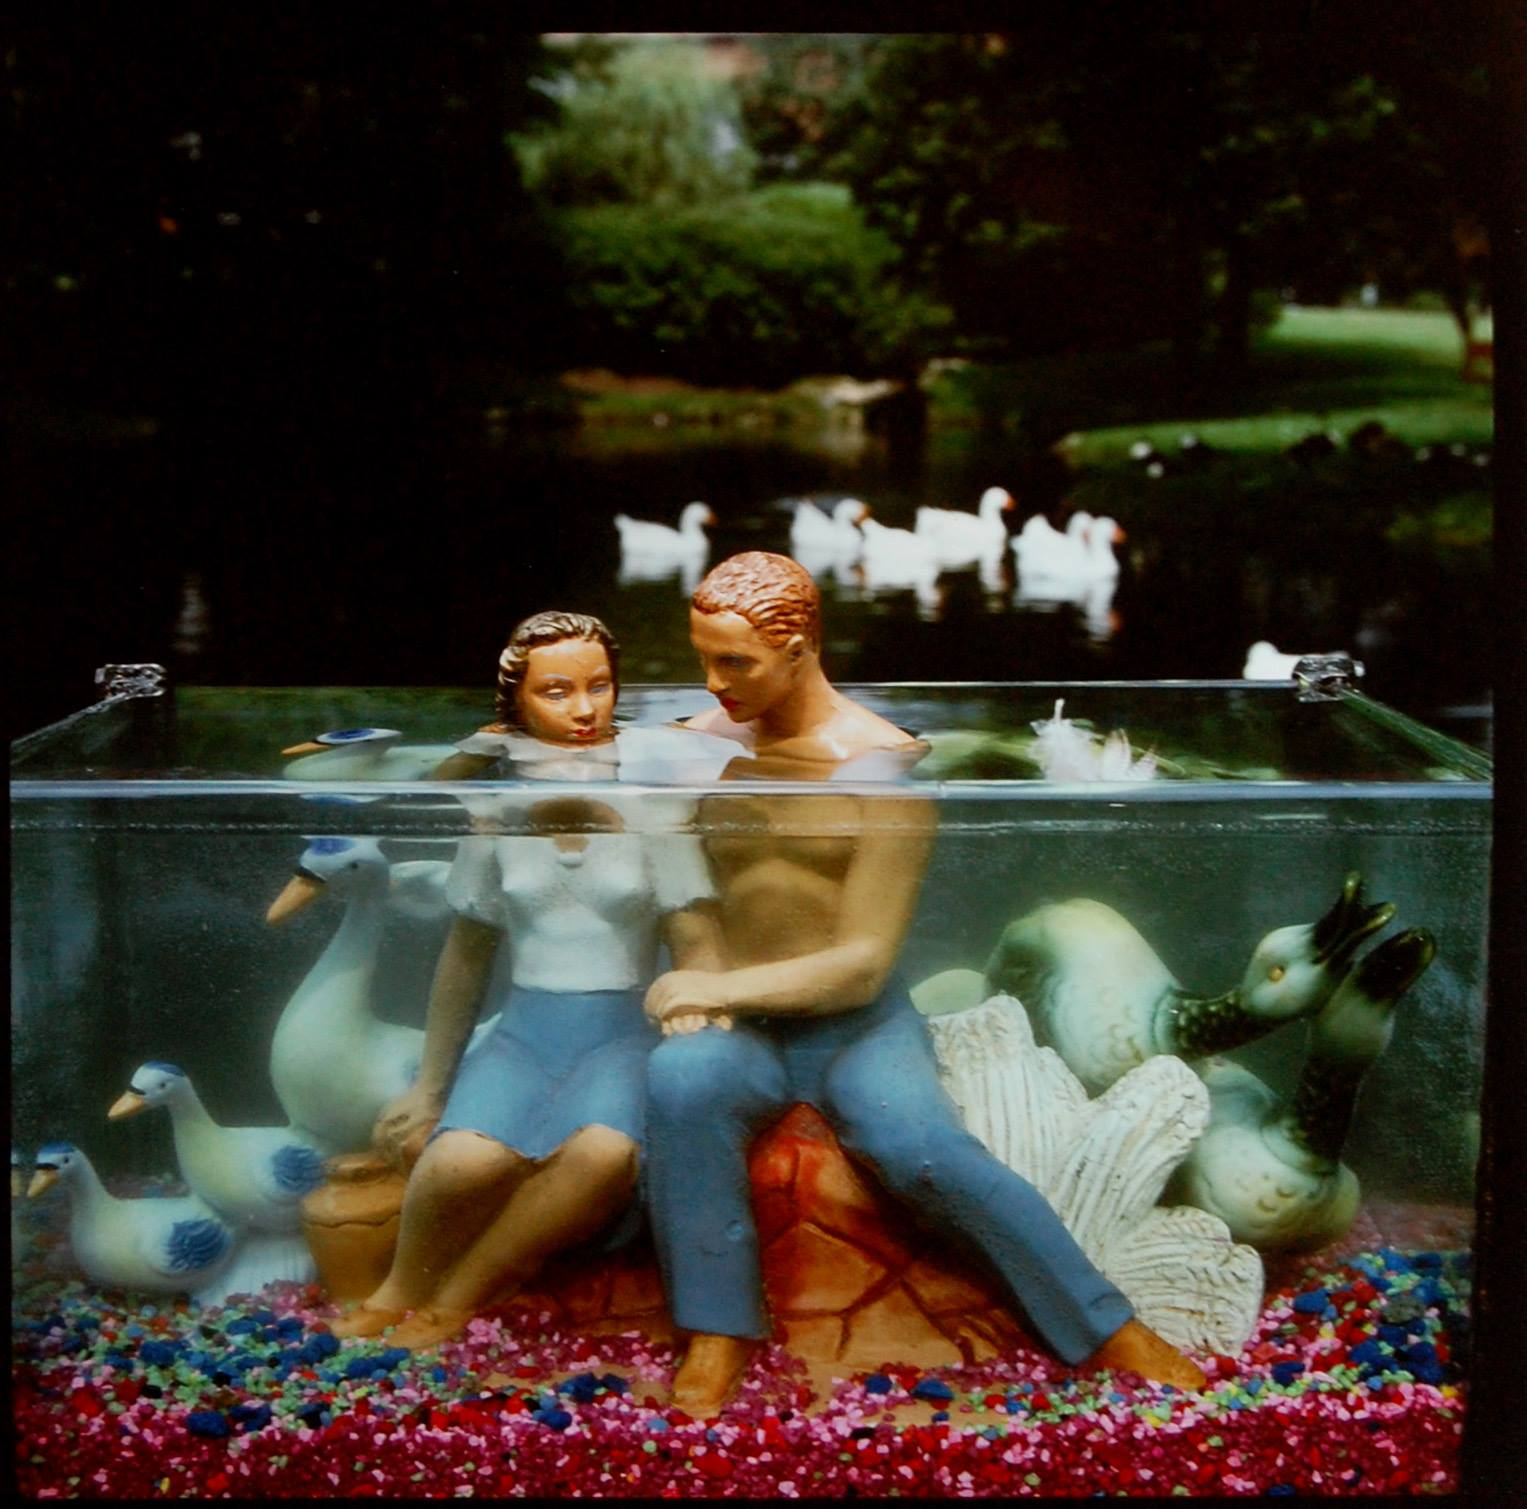 """ARTHUR TRESS (b. 1940) """"Flock of Young Lovers"""" 1989 Cibachrome print 16 x 20 inches Ed. 4/50"""